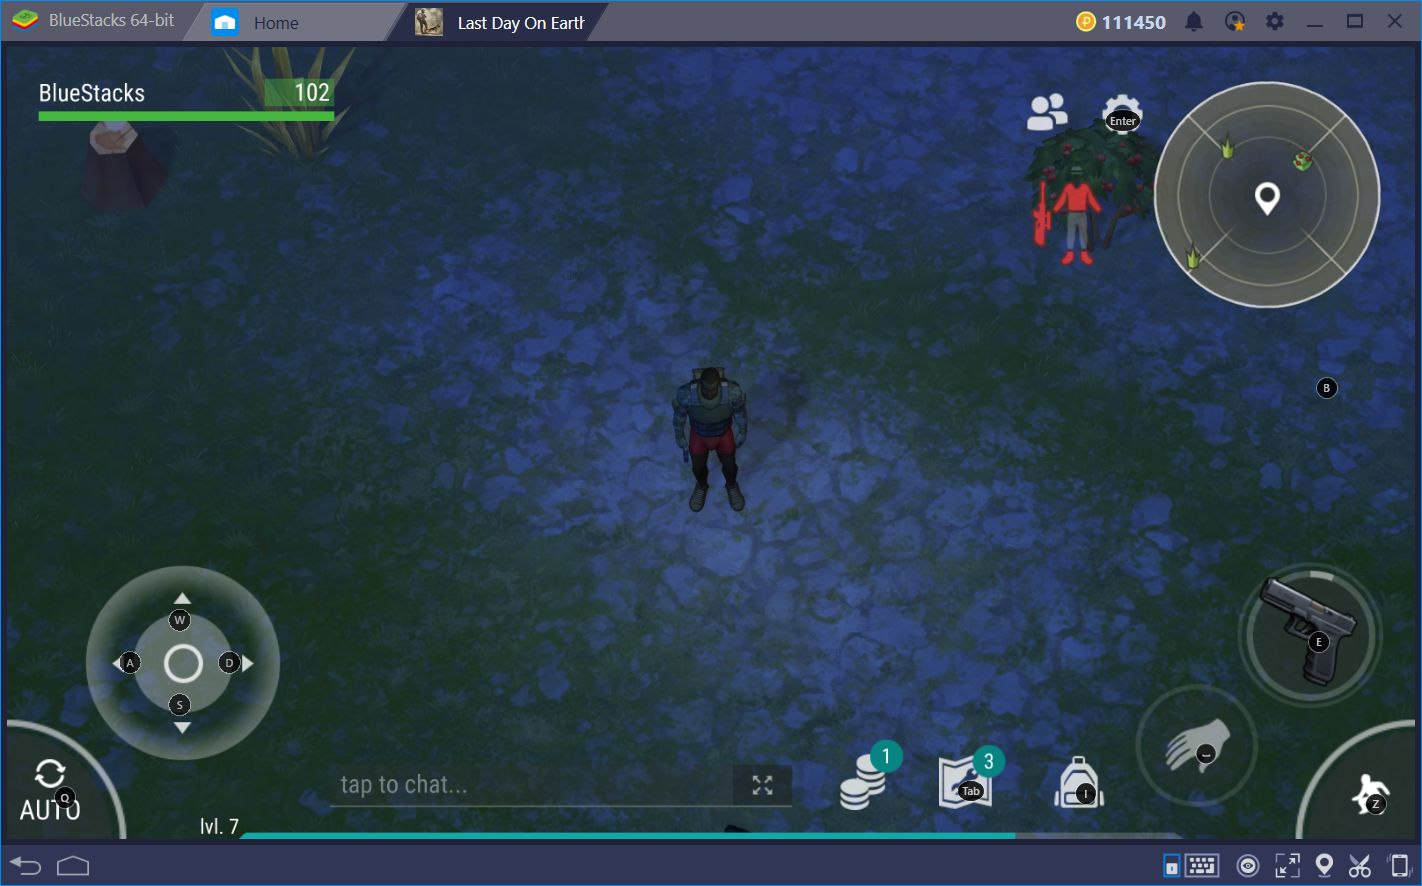 Surviving the 'Last Day on Earth' With the BlueStacks Keymapping Tool